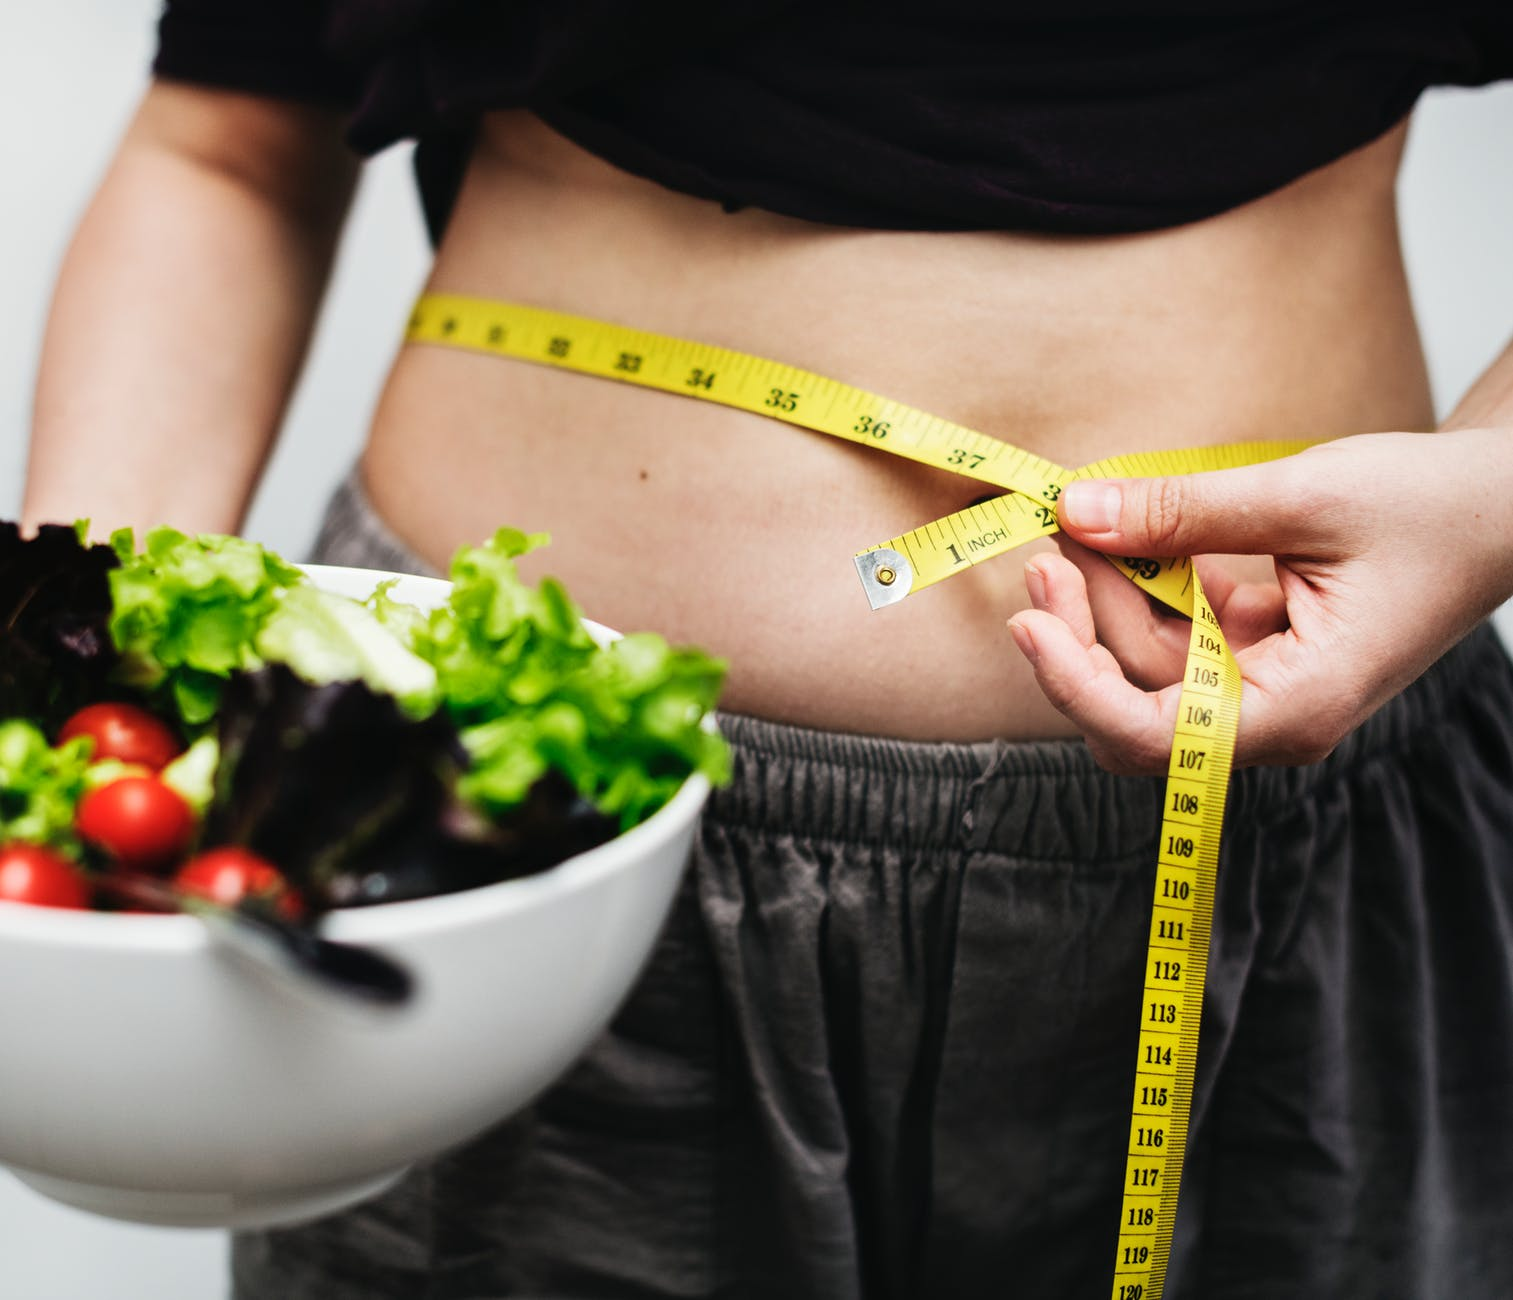 Few Changes in Diet to Get Rid Of Obesity